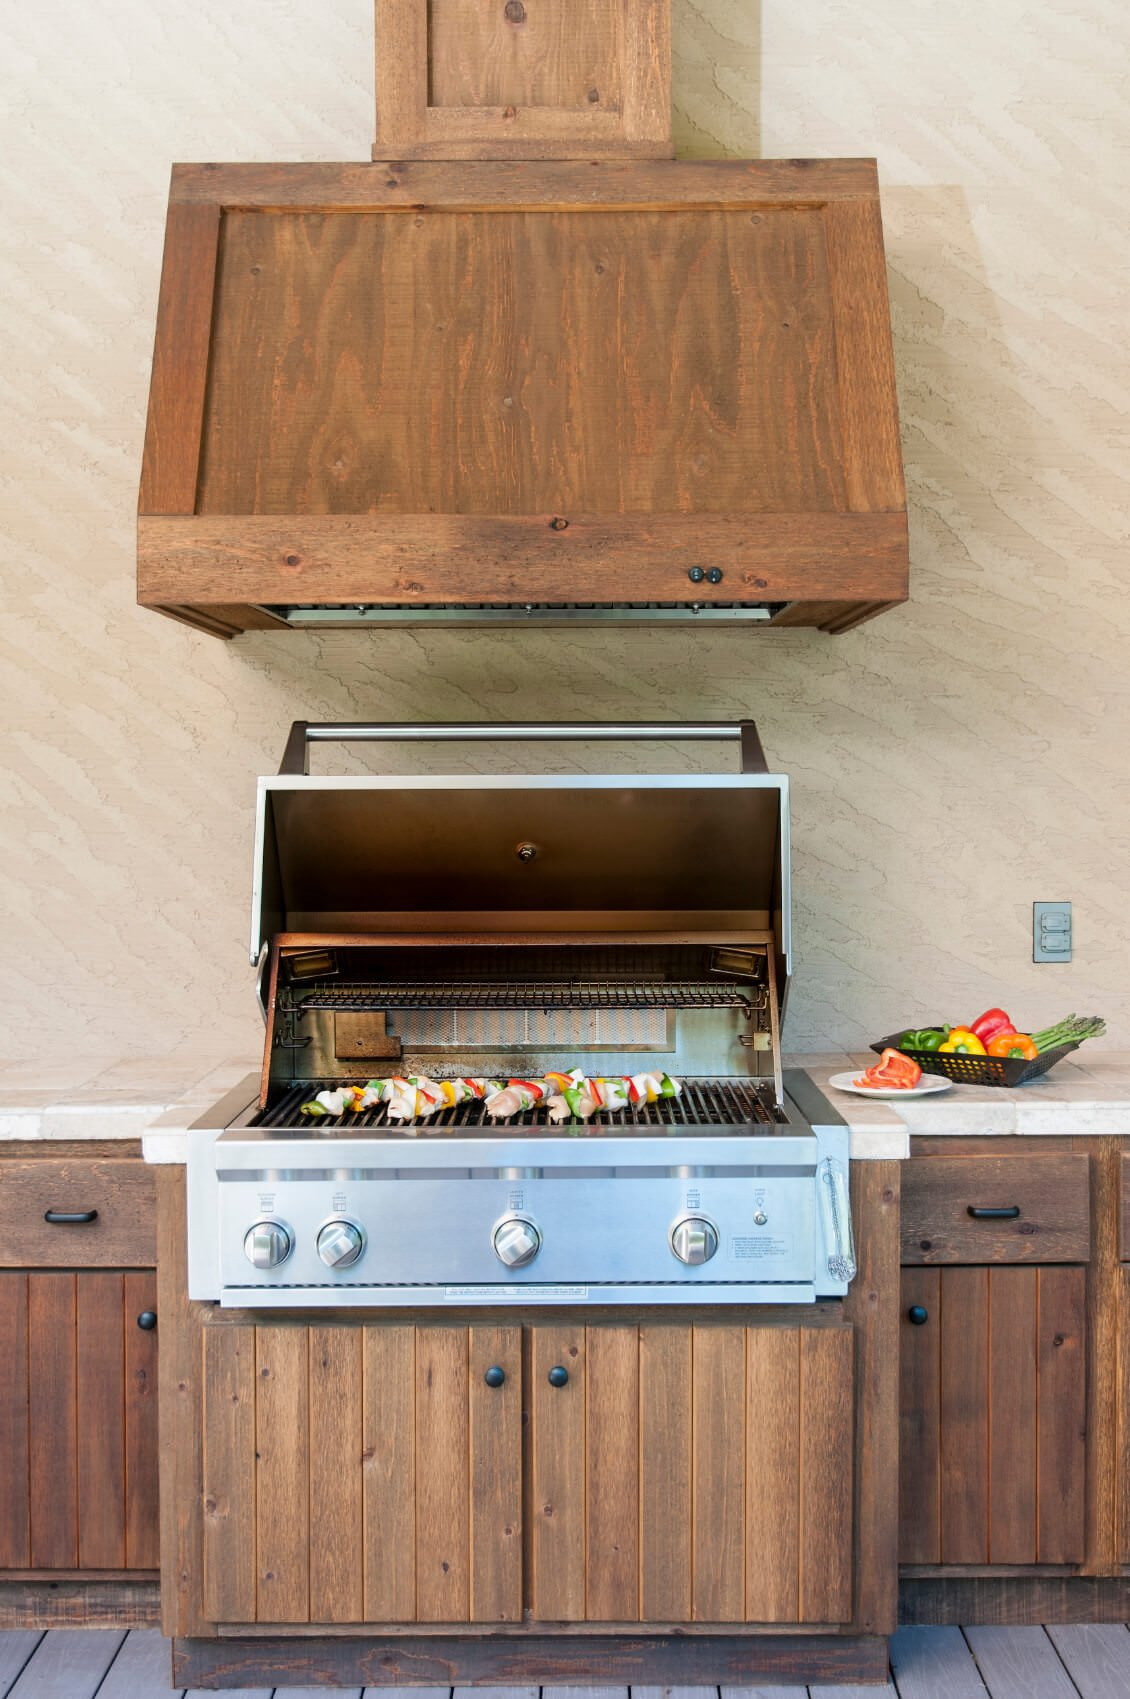 This outdoor kitchen on the home's deck features a bar built in wooden and a smooth marble countertops.